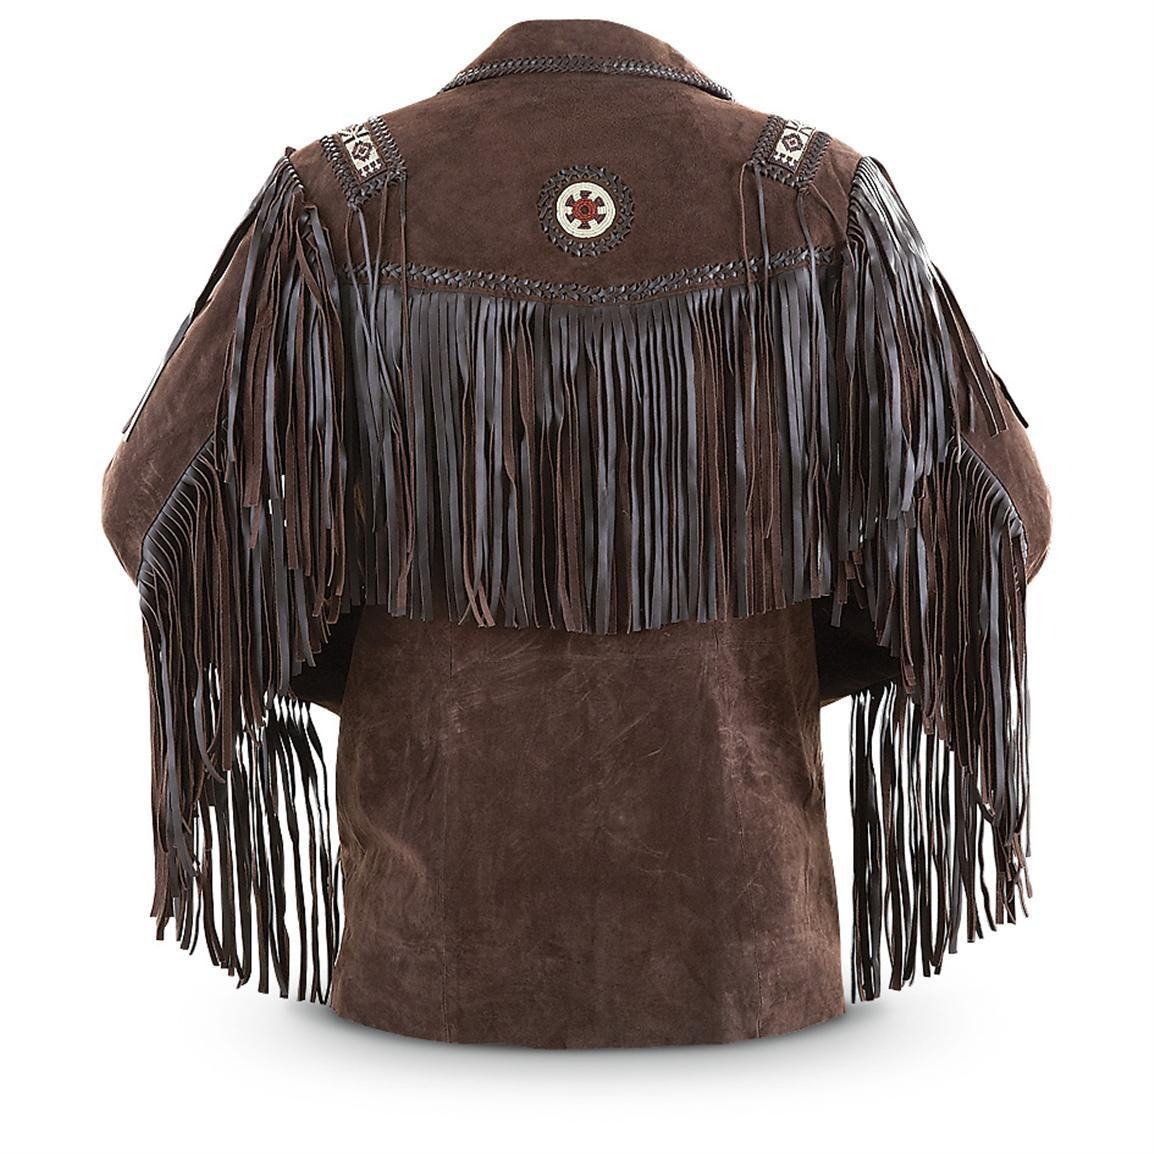 Men's New Beads Fringed Cow suede Leather Jacket Western Wear